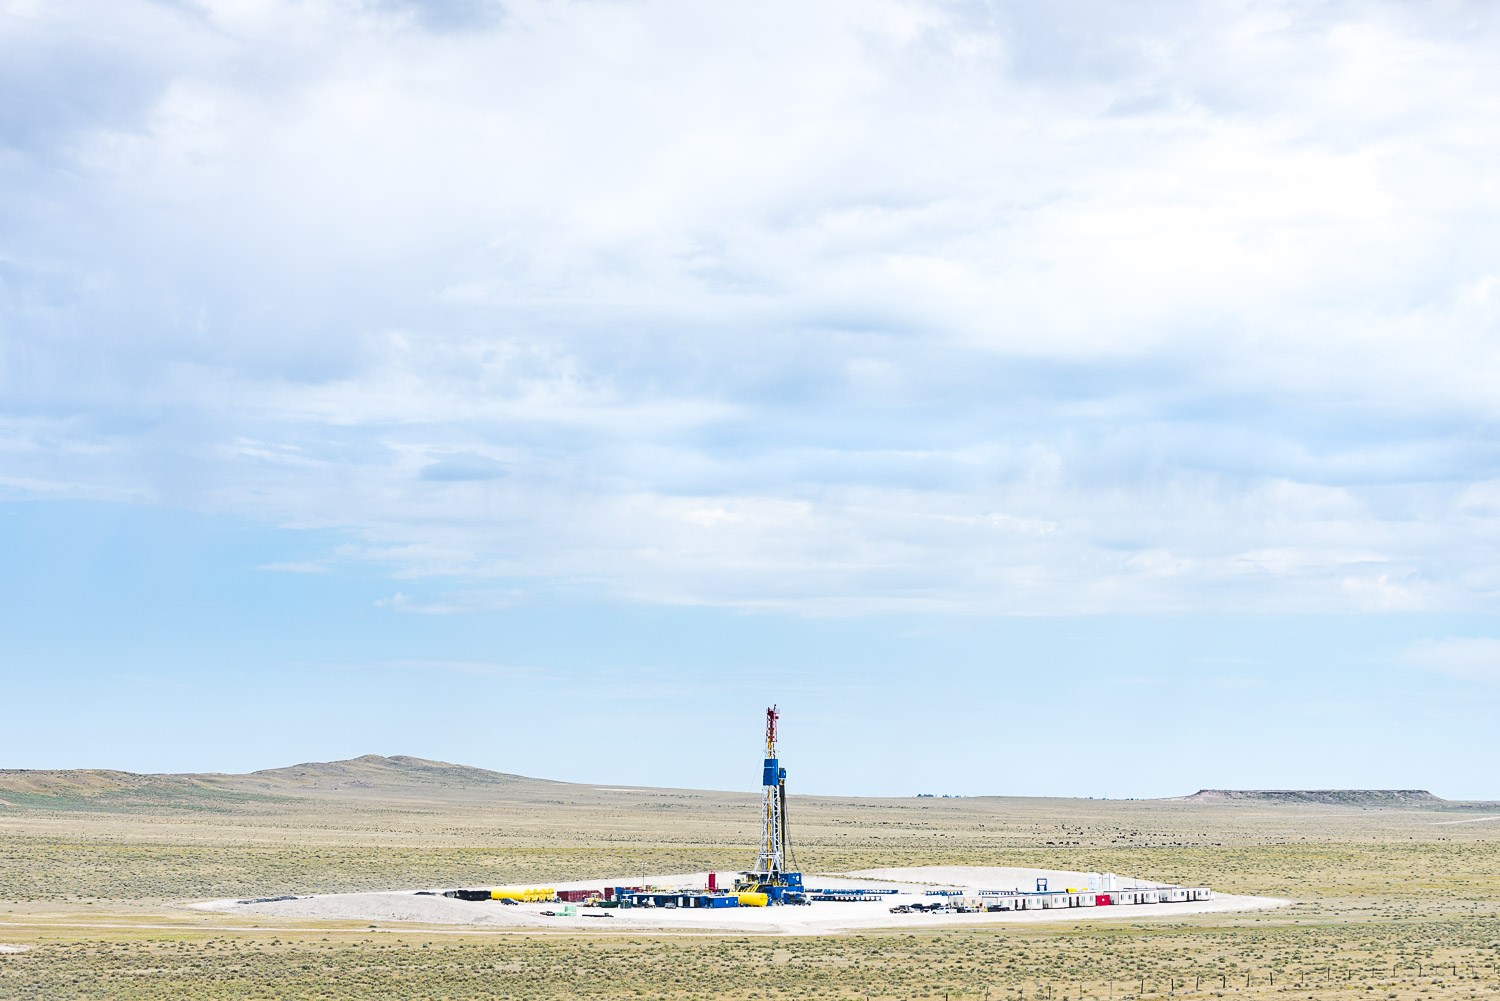 Rig and Cows, Pawnee Buttes, CO, 2013